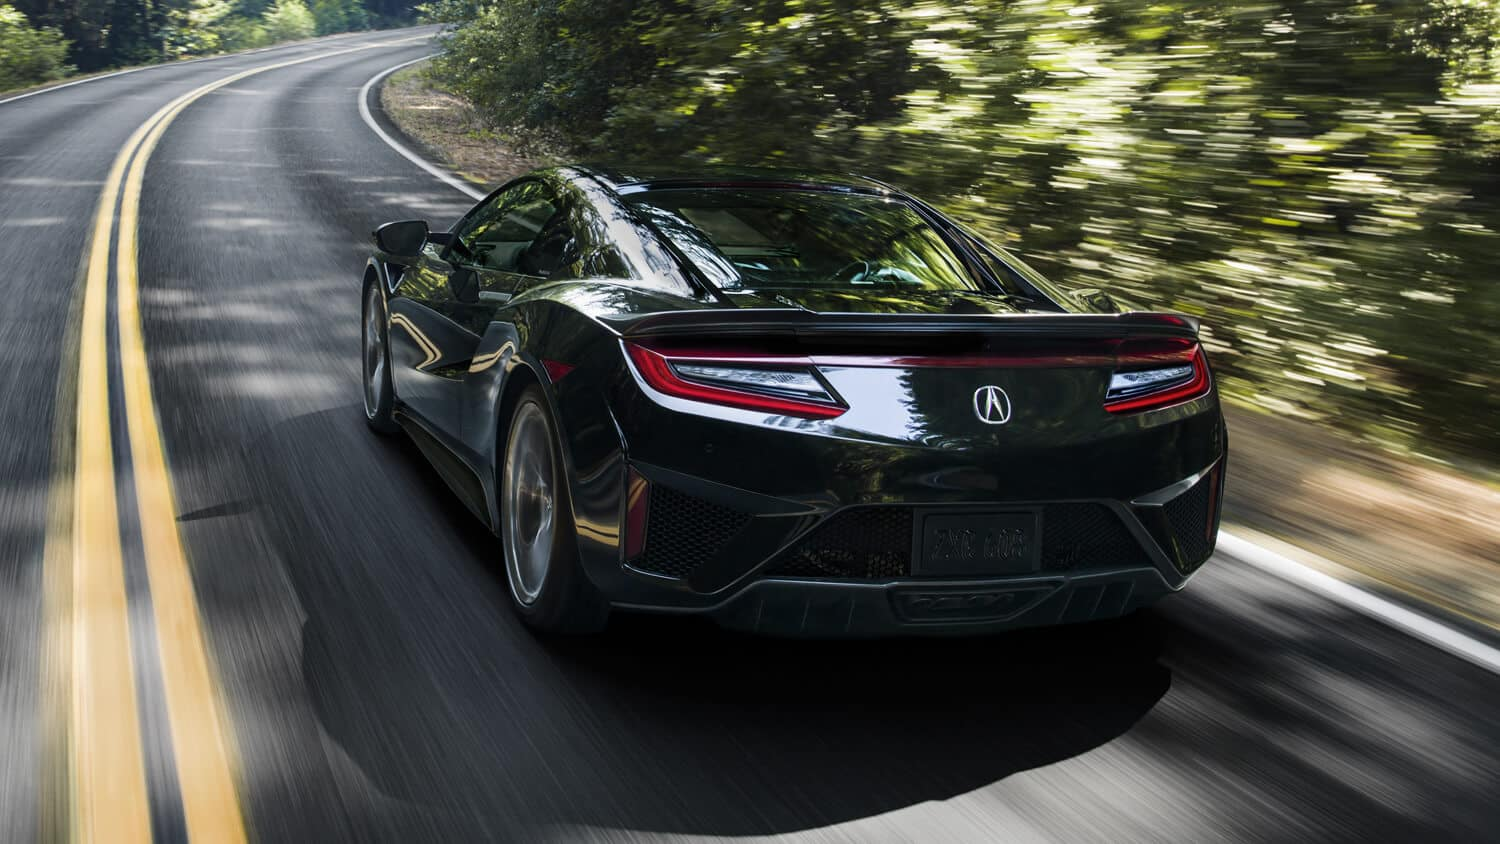 2018 Acura NSX Exterior Rear Angle Forest